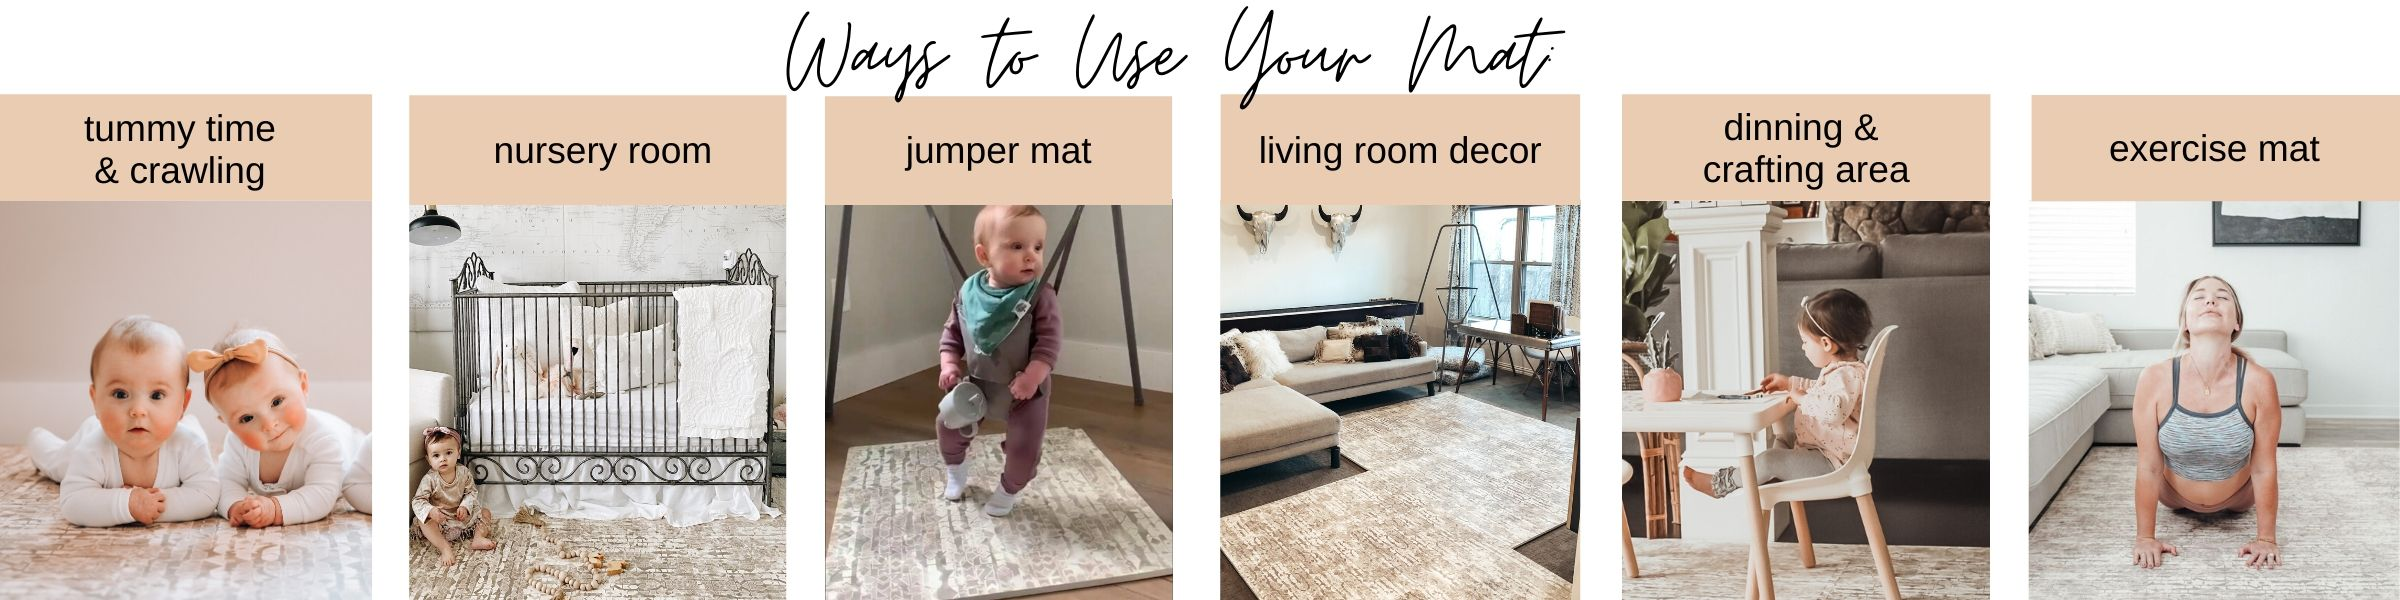 Famokids play mat ways to use